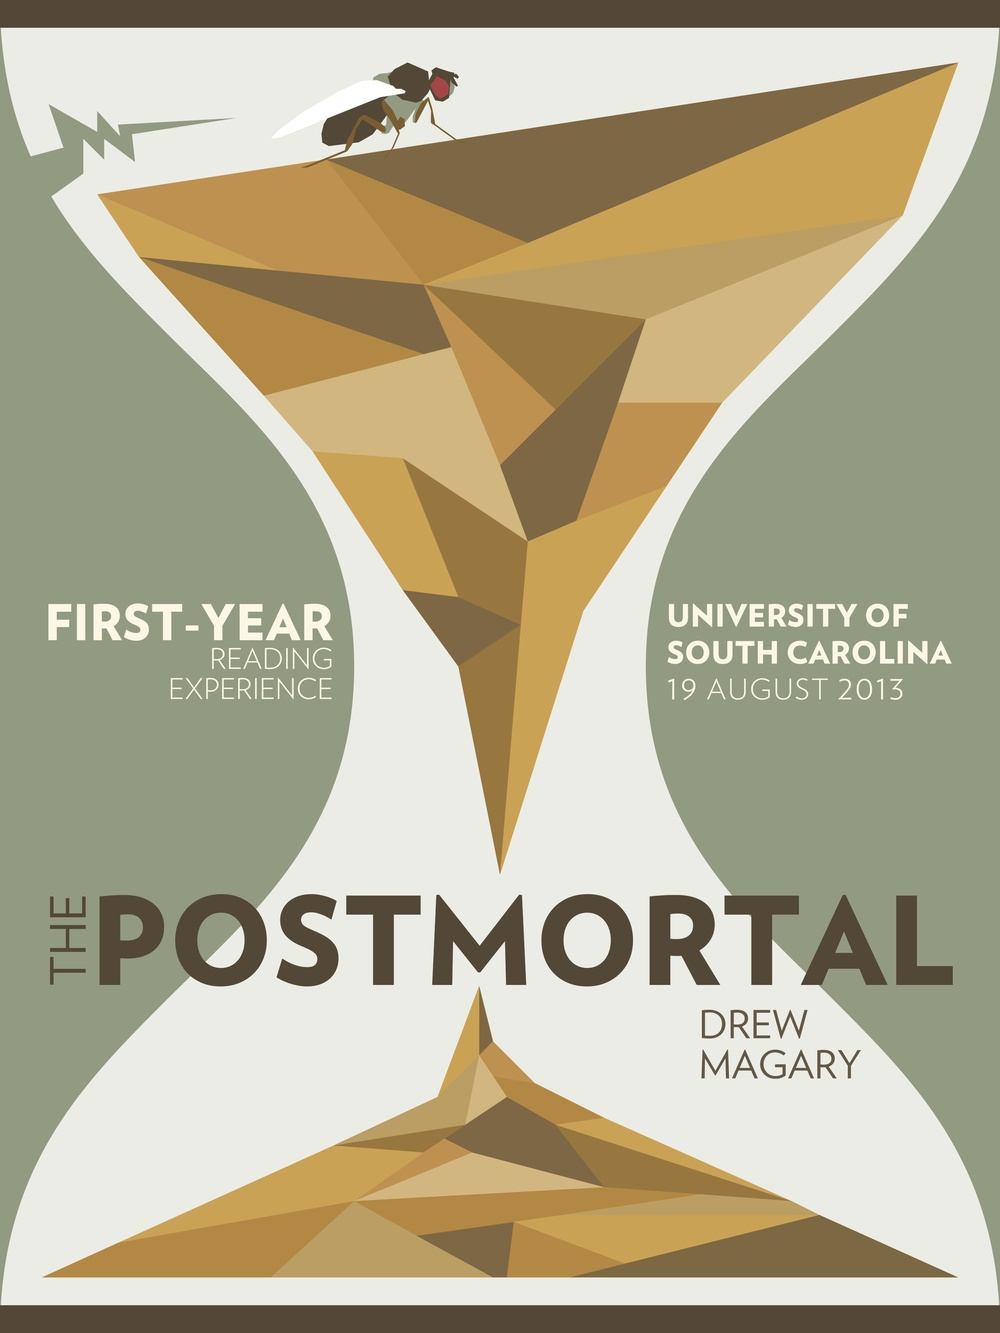 Poster designed for the First Year Reading Experience at the University of South Carolina for The Postmortal by Drew Magary